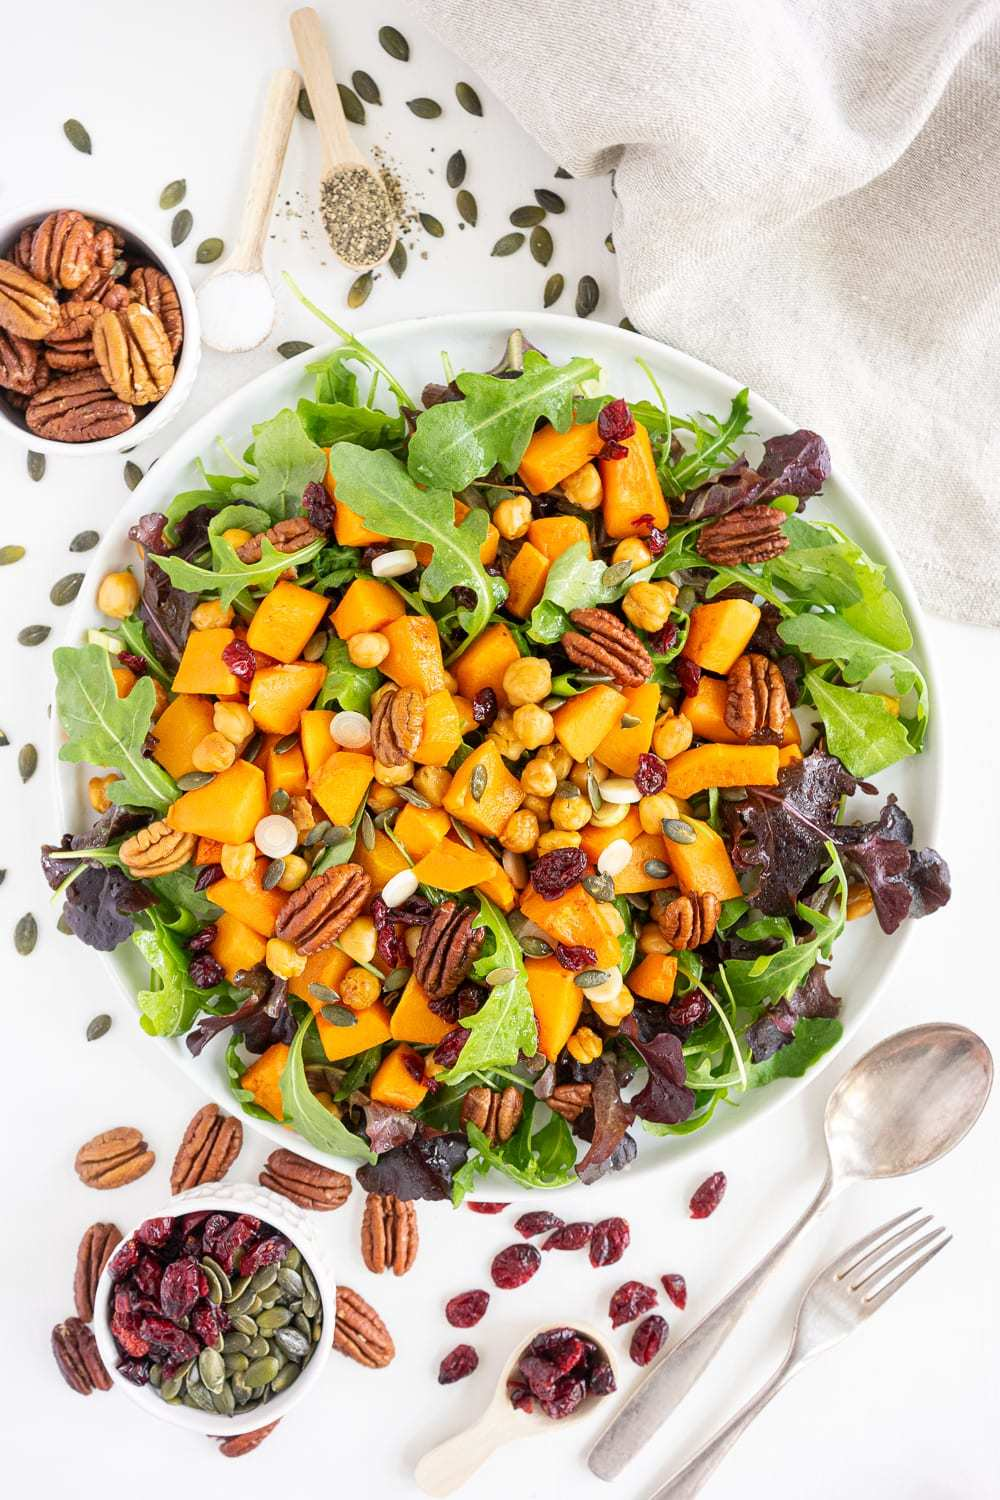 This butternut squash salad makes a delicious plant based thanksgiving side dish.